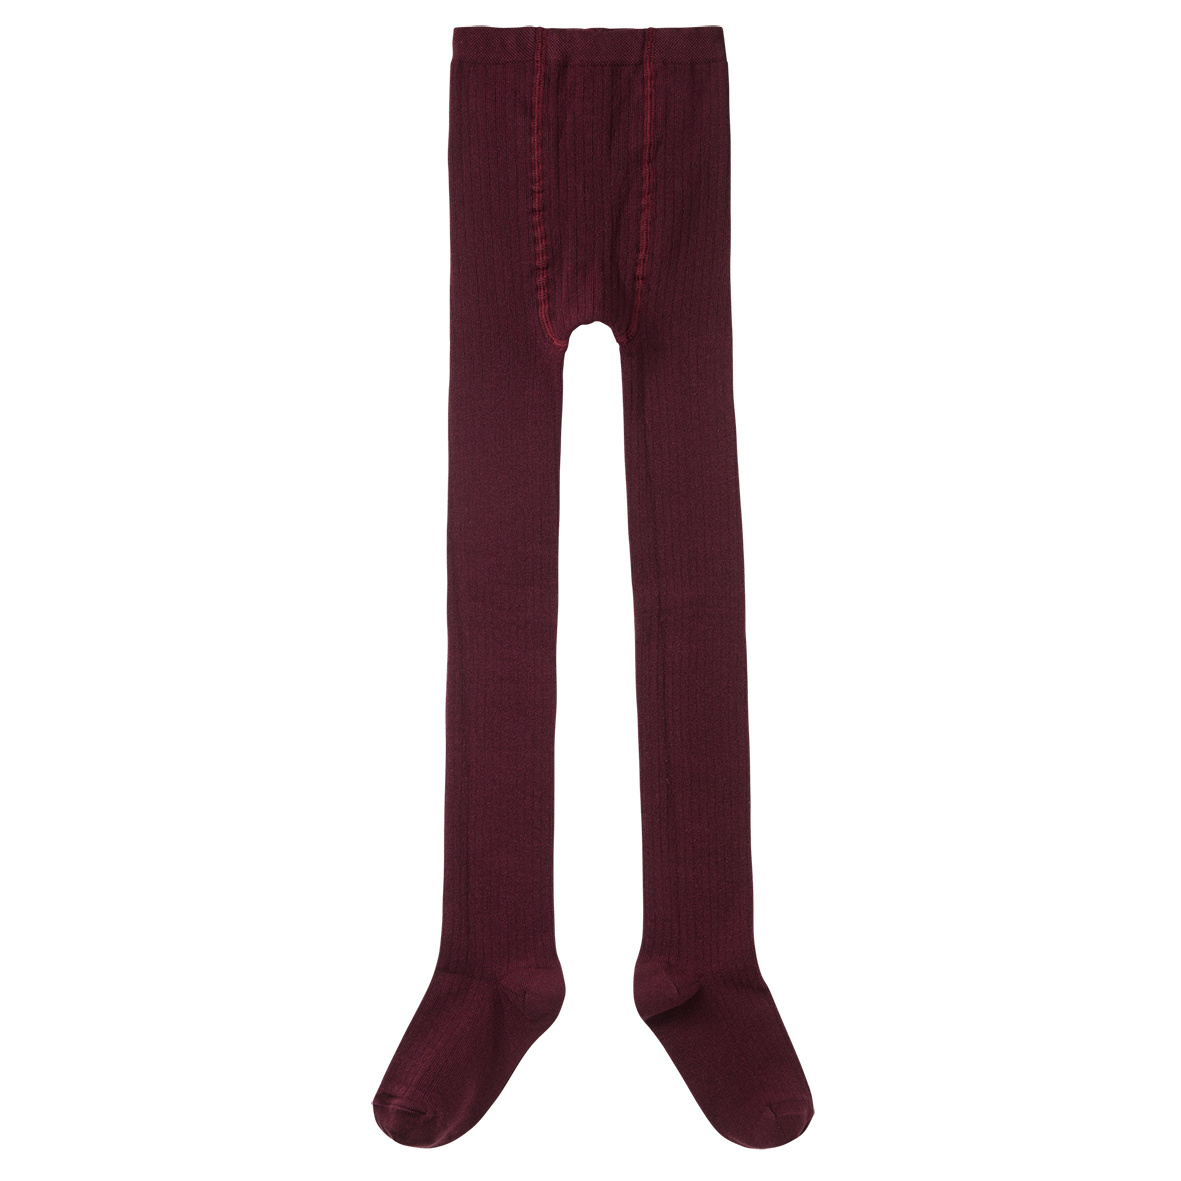 Tights rib - Plum-1